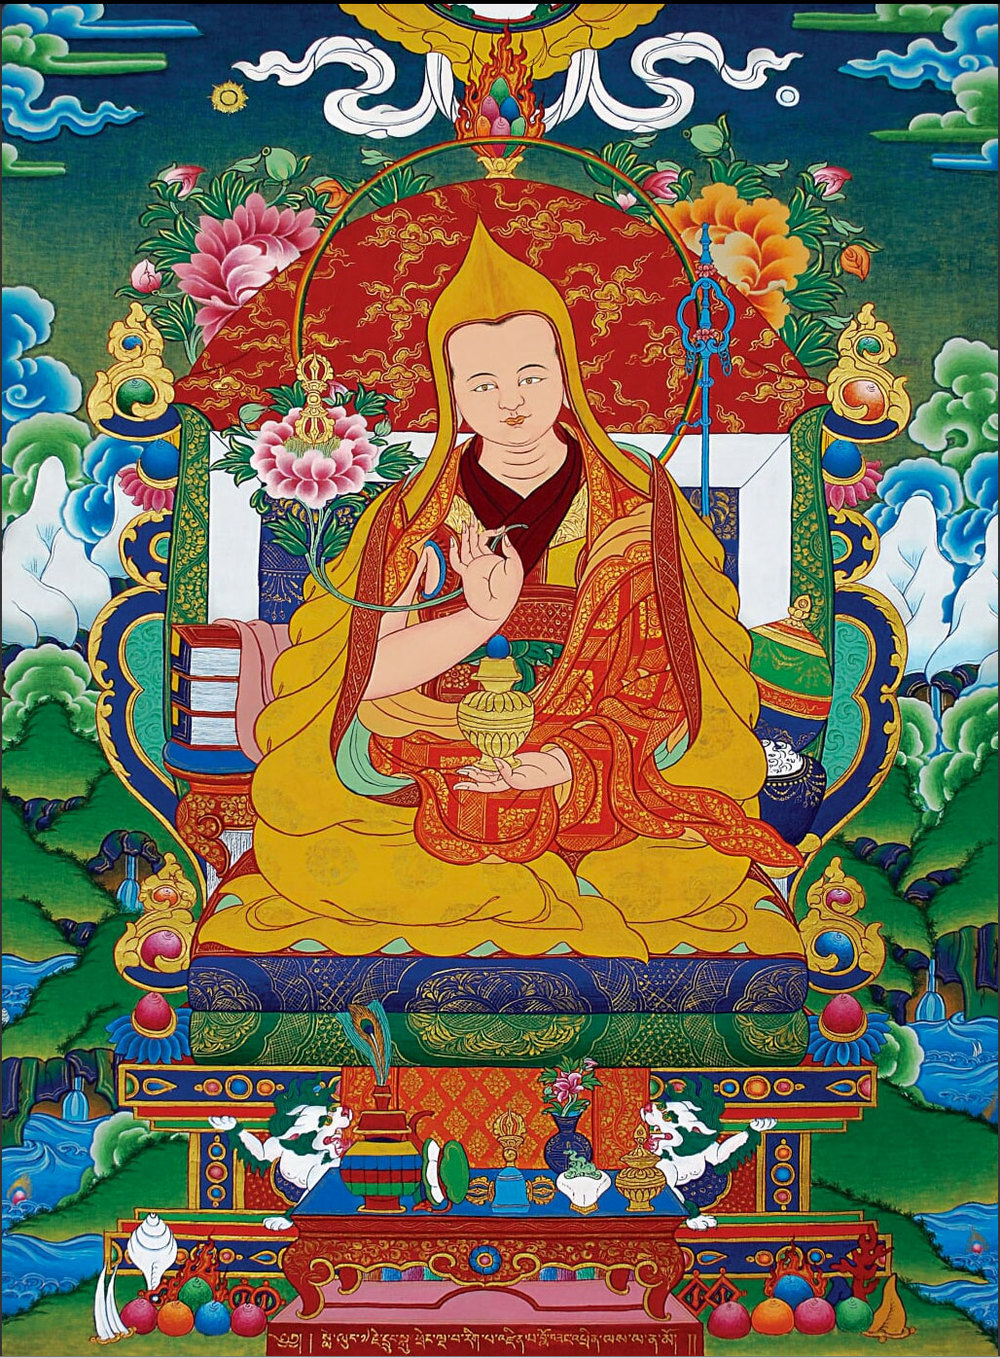 The Great 5th Lelung Rinpoche